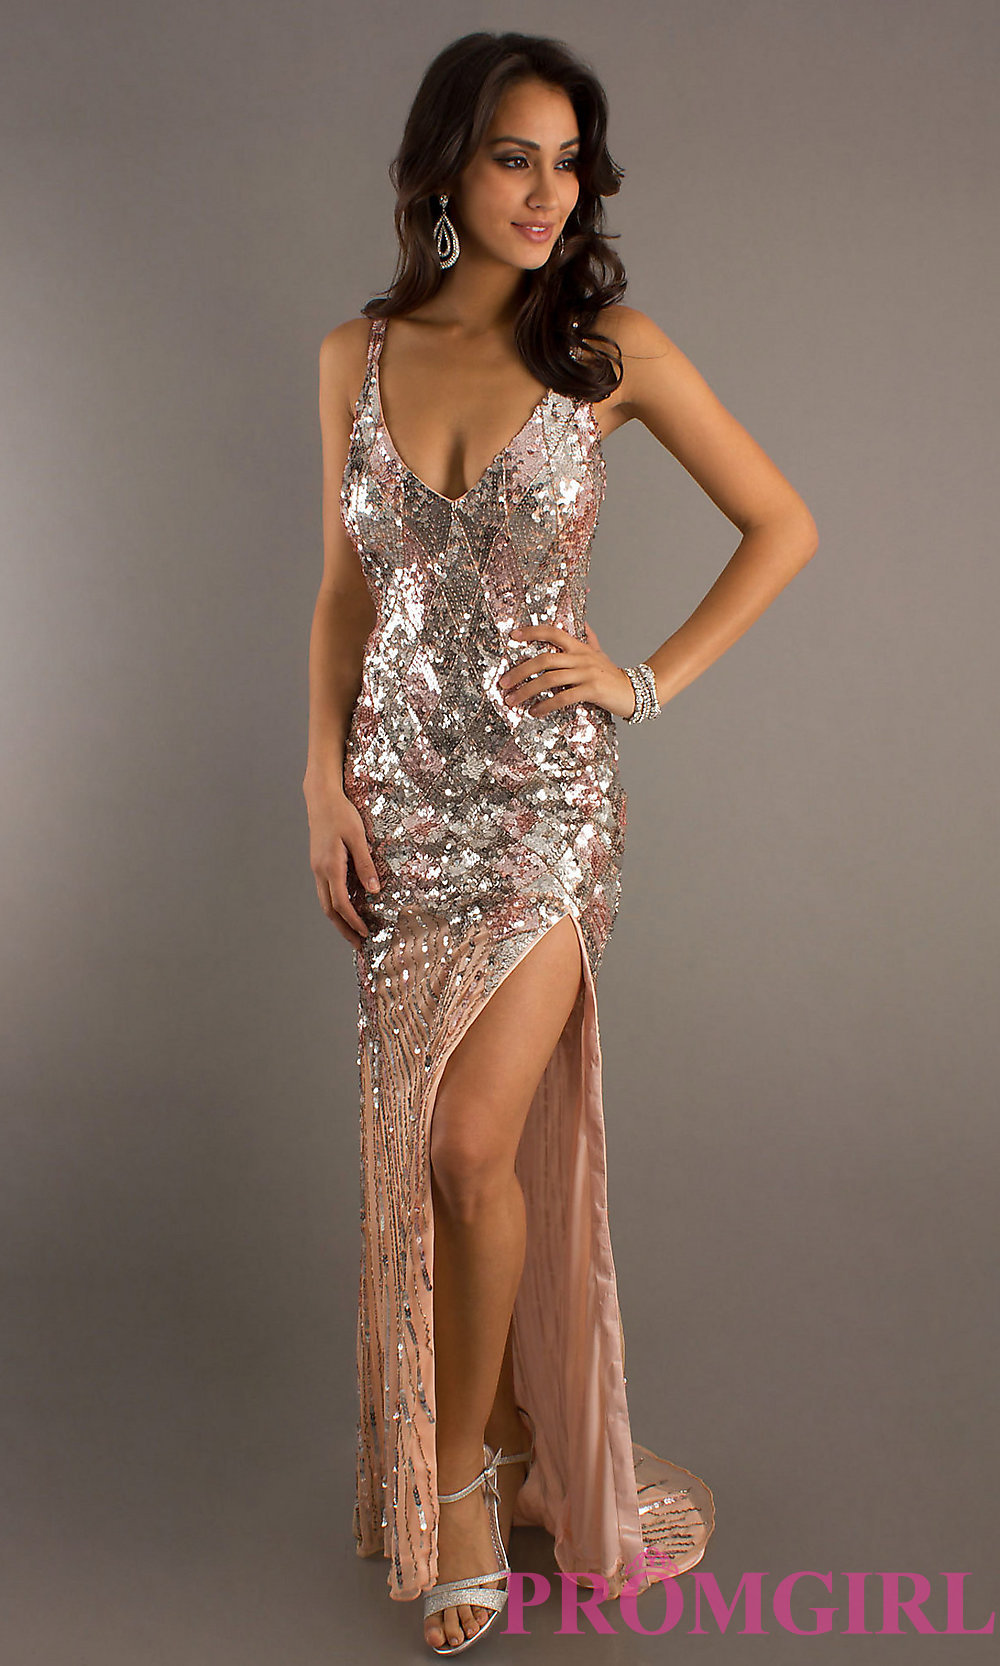 Gold Sequin Prom Dress Photo Album - Reikian